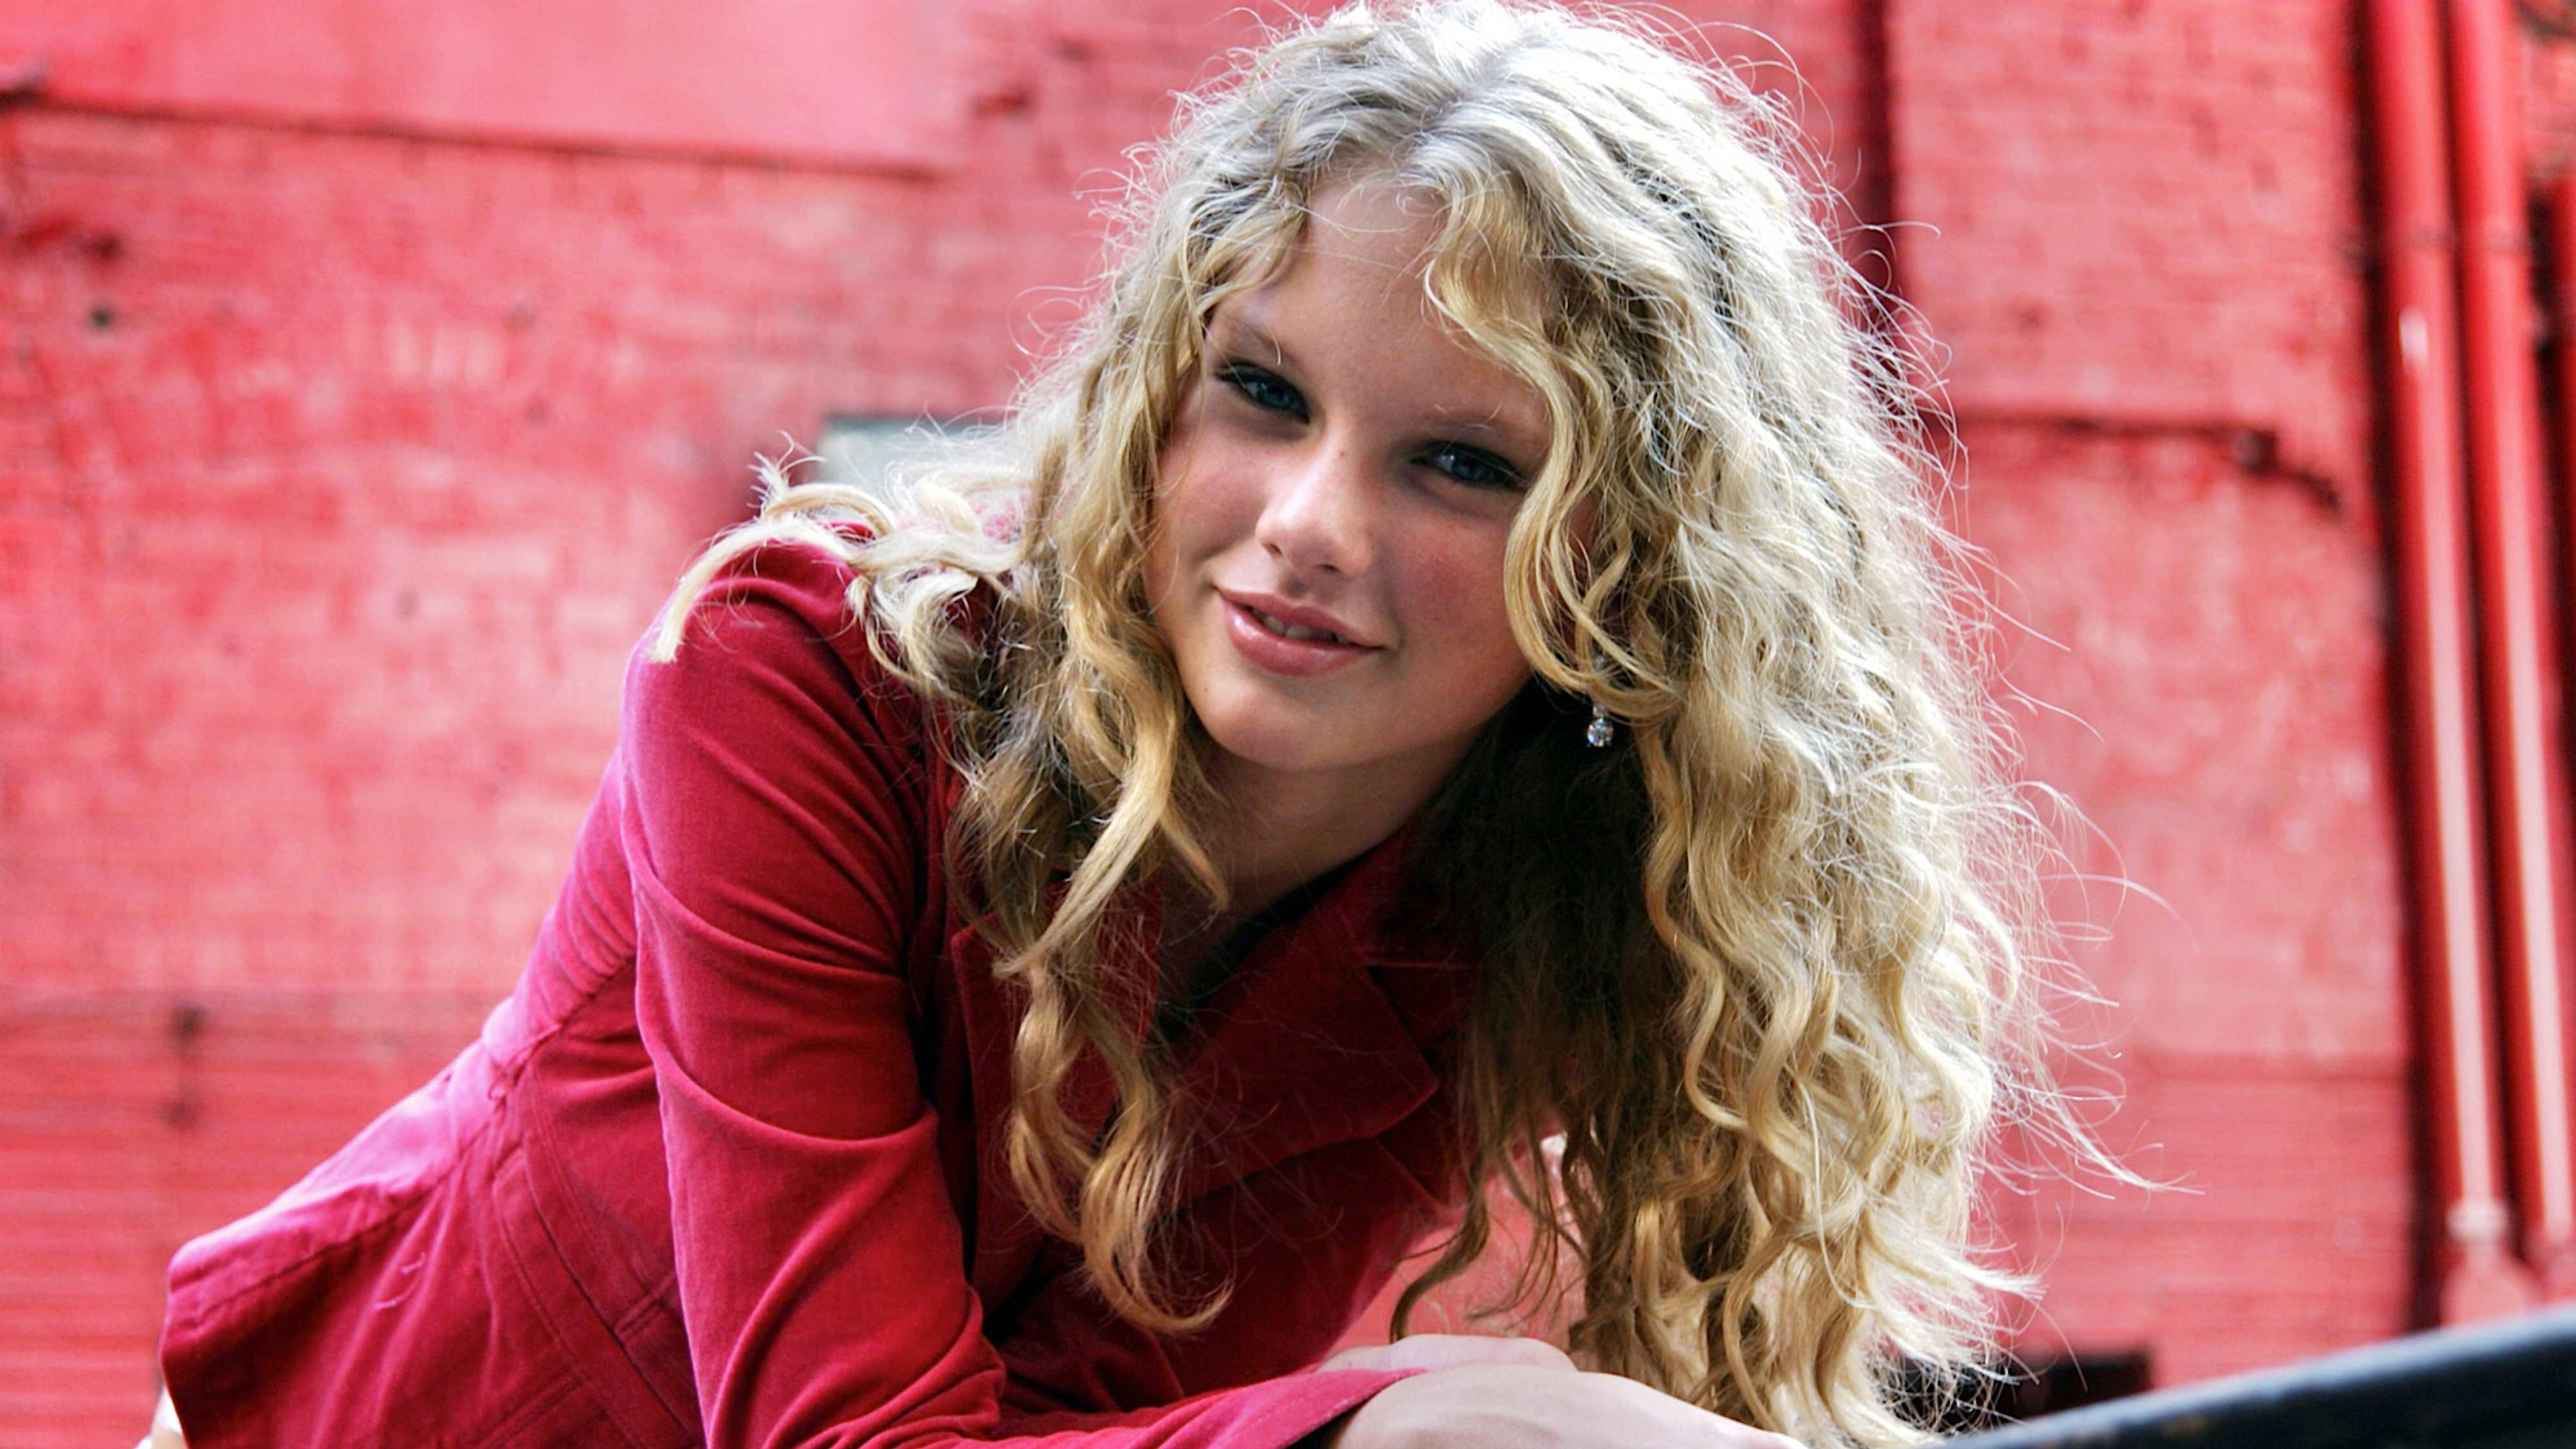 Taylor 4k Wallpapers For Your Desktop Or Mobile Screen Free And Easy To Download